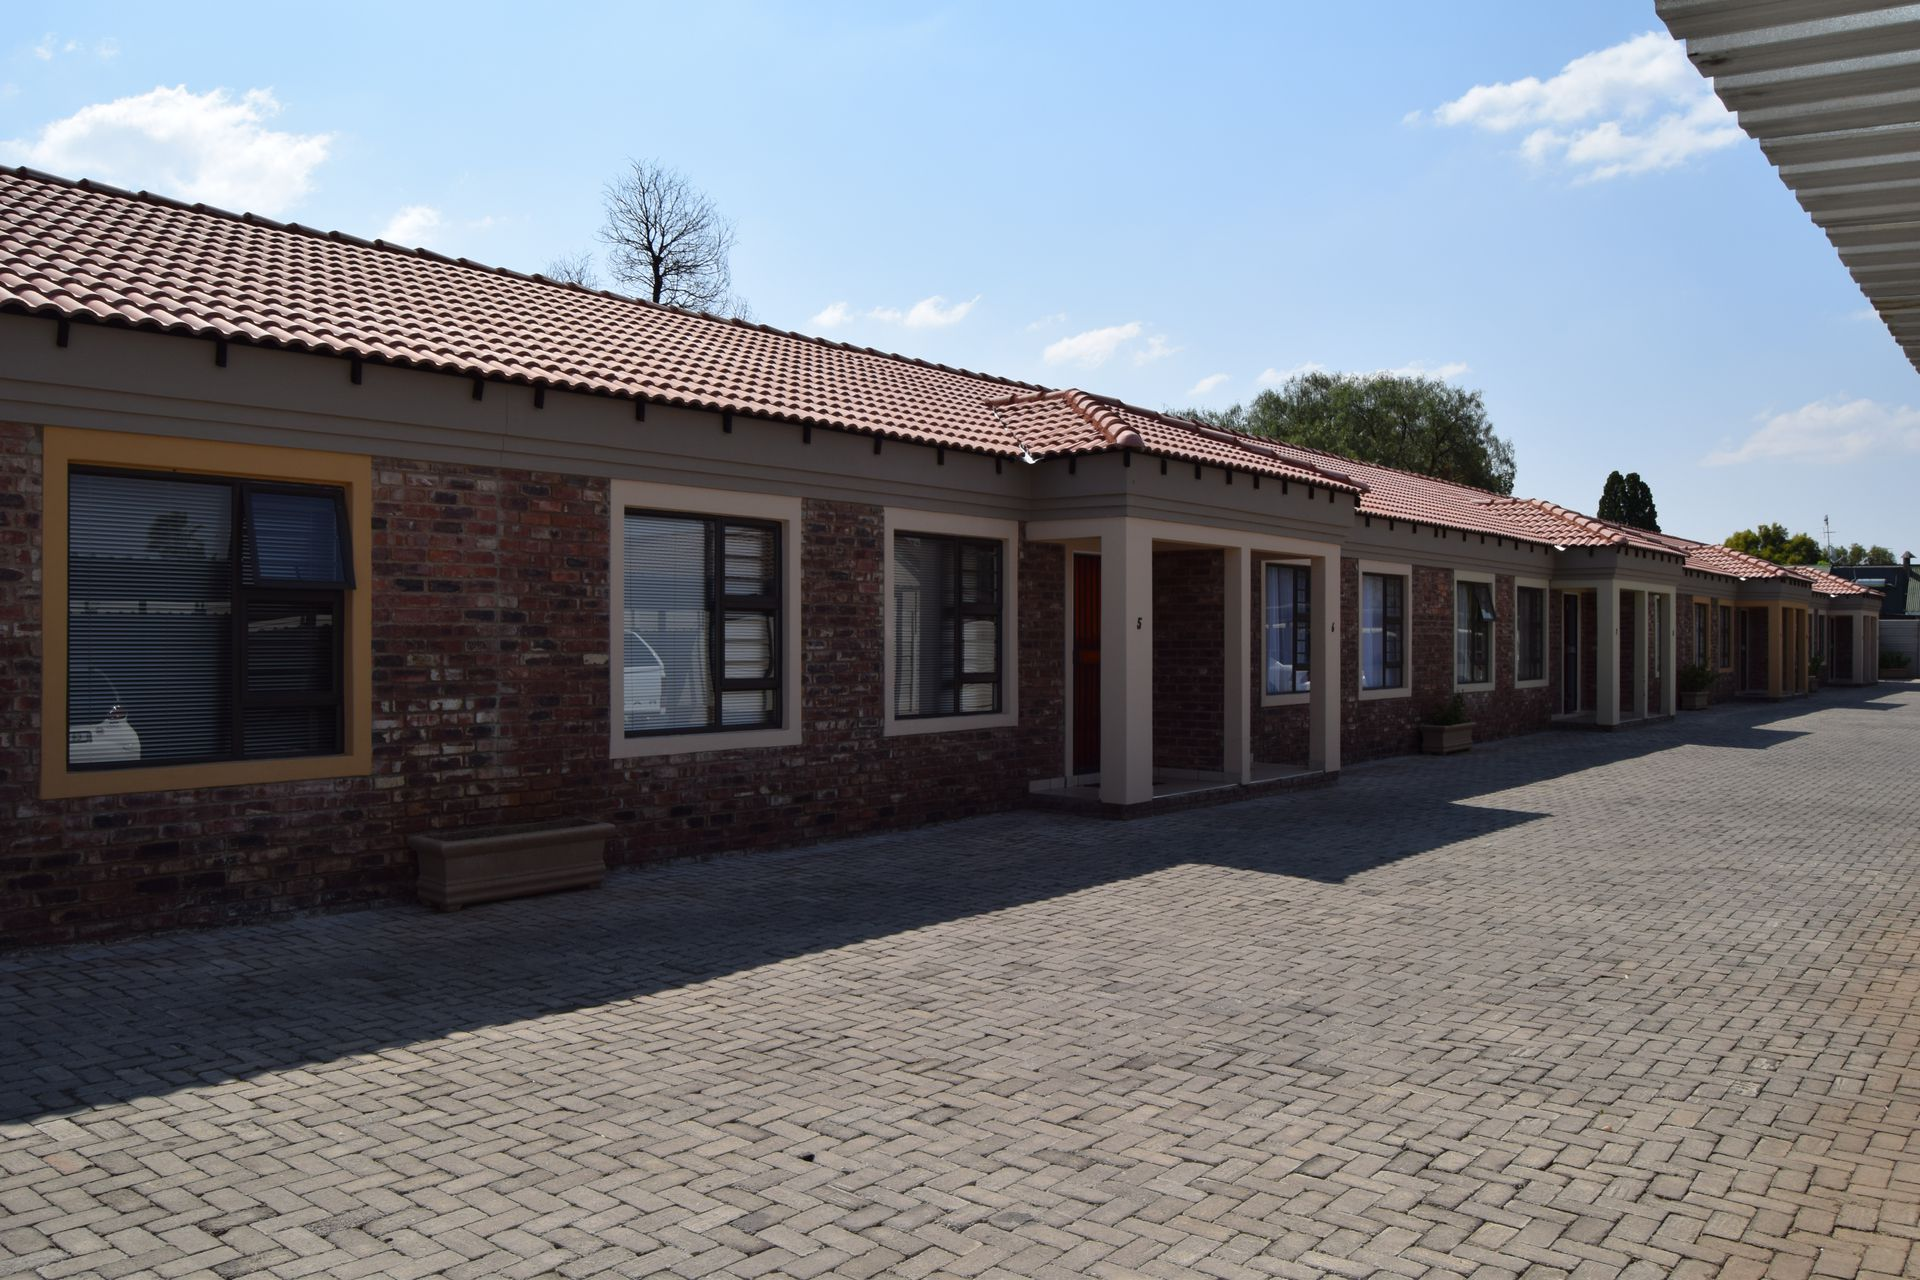 Potchefstroom Central property for sale. Ref No: 13537654. Picture no 1